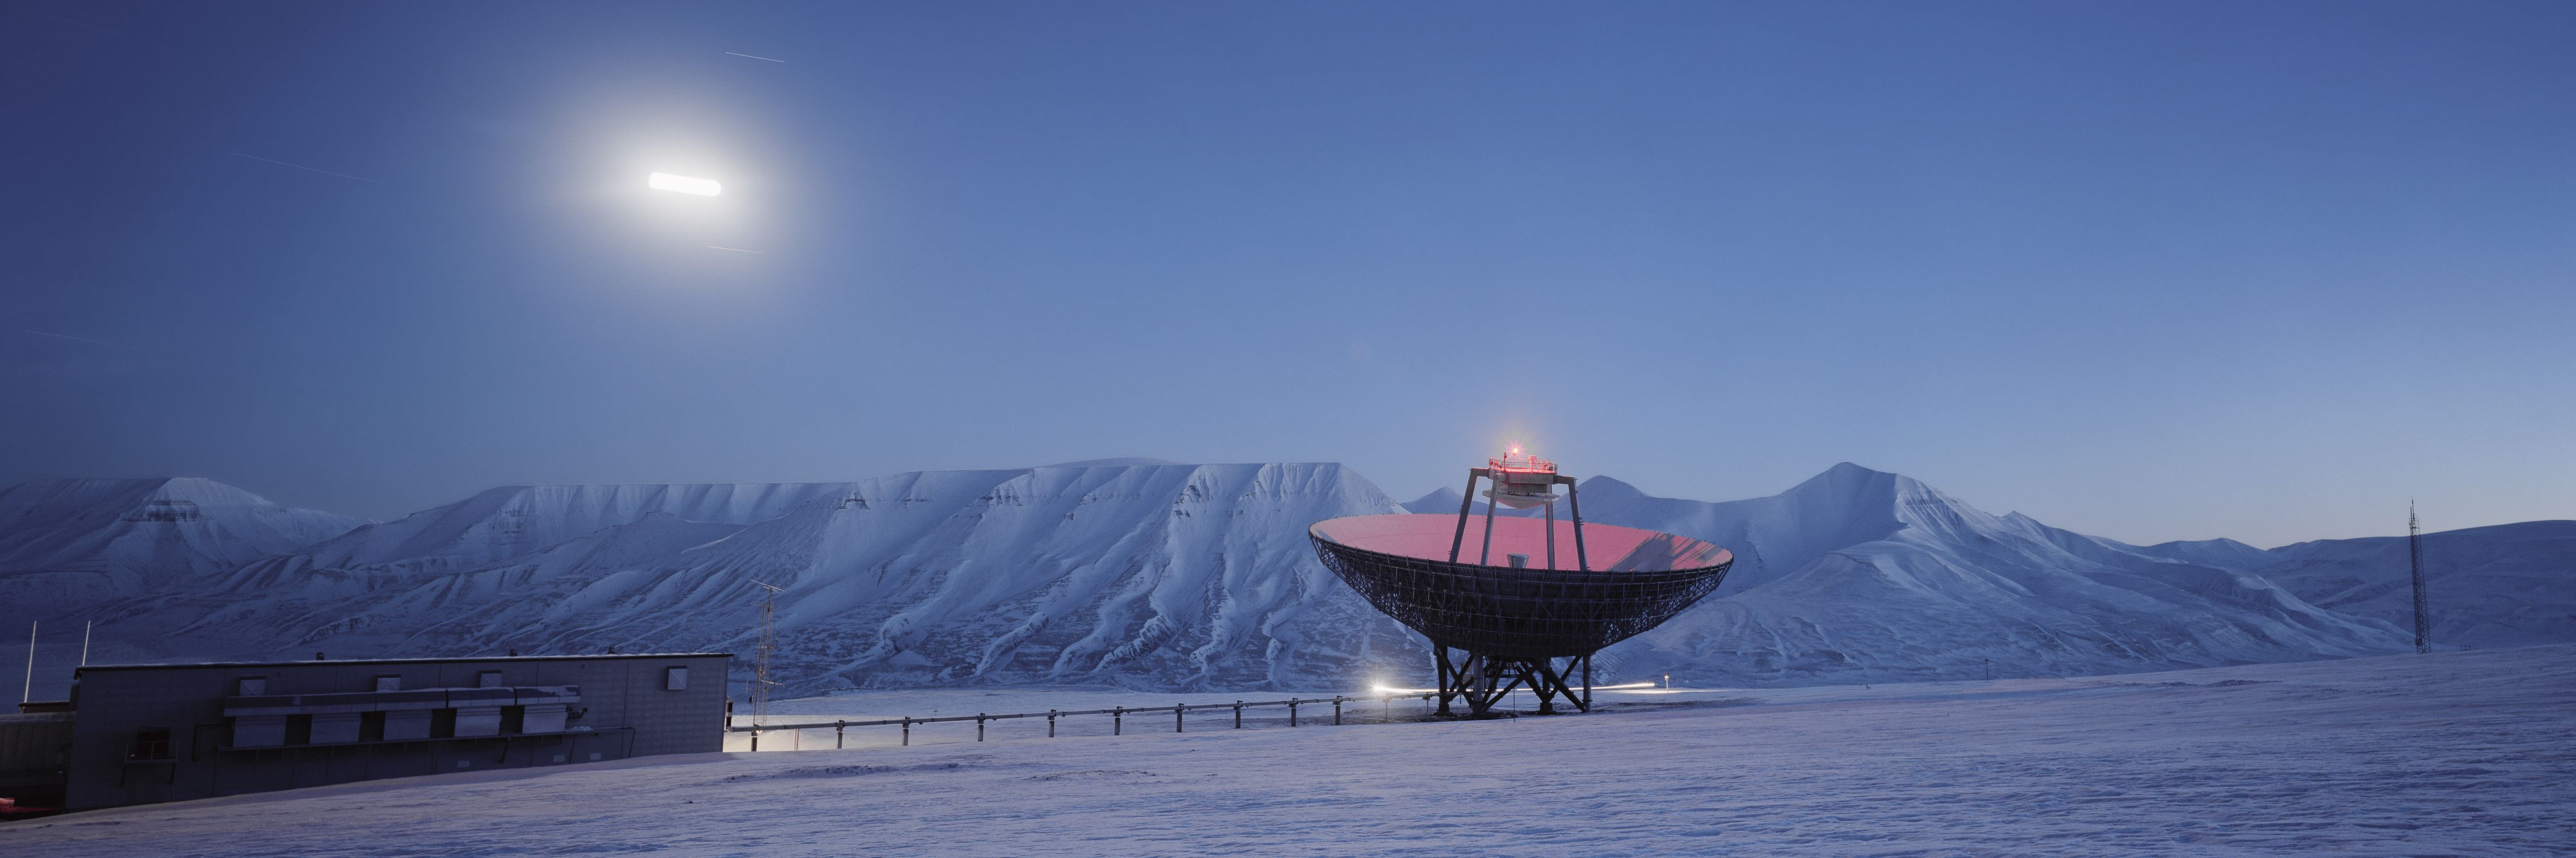 Dish in moonlight, Arctic Technology,Spitsbergen,Christian Houge,Photography